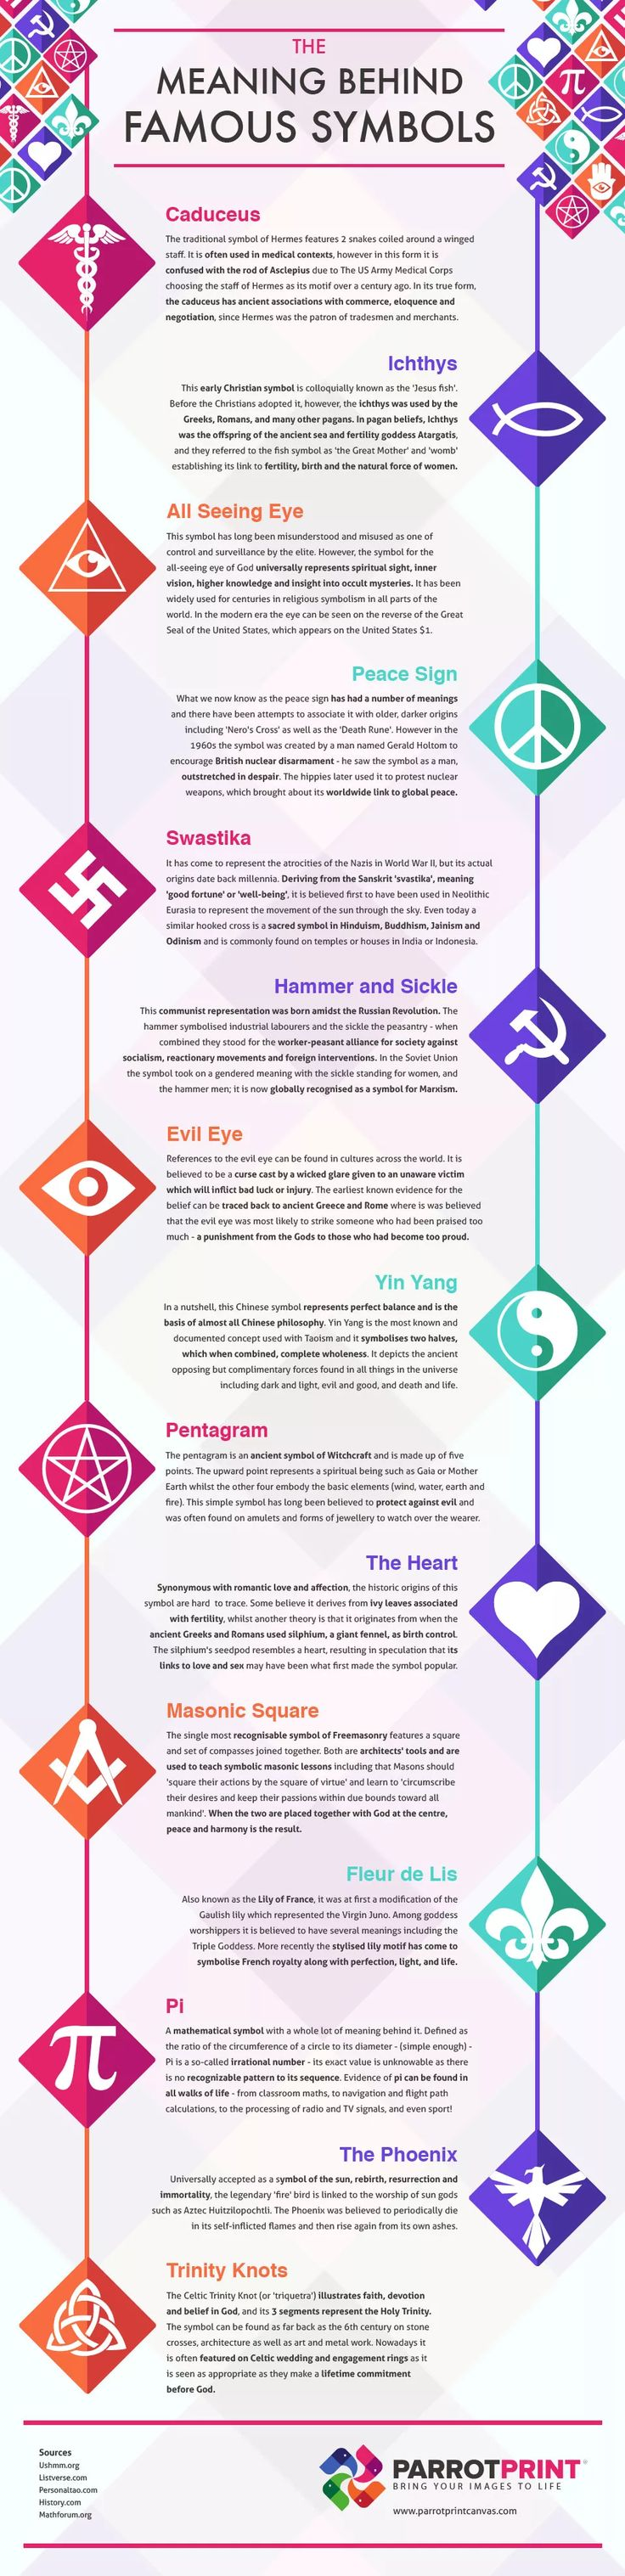 The Meaning Behind Famous Symbols - #infographic